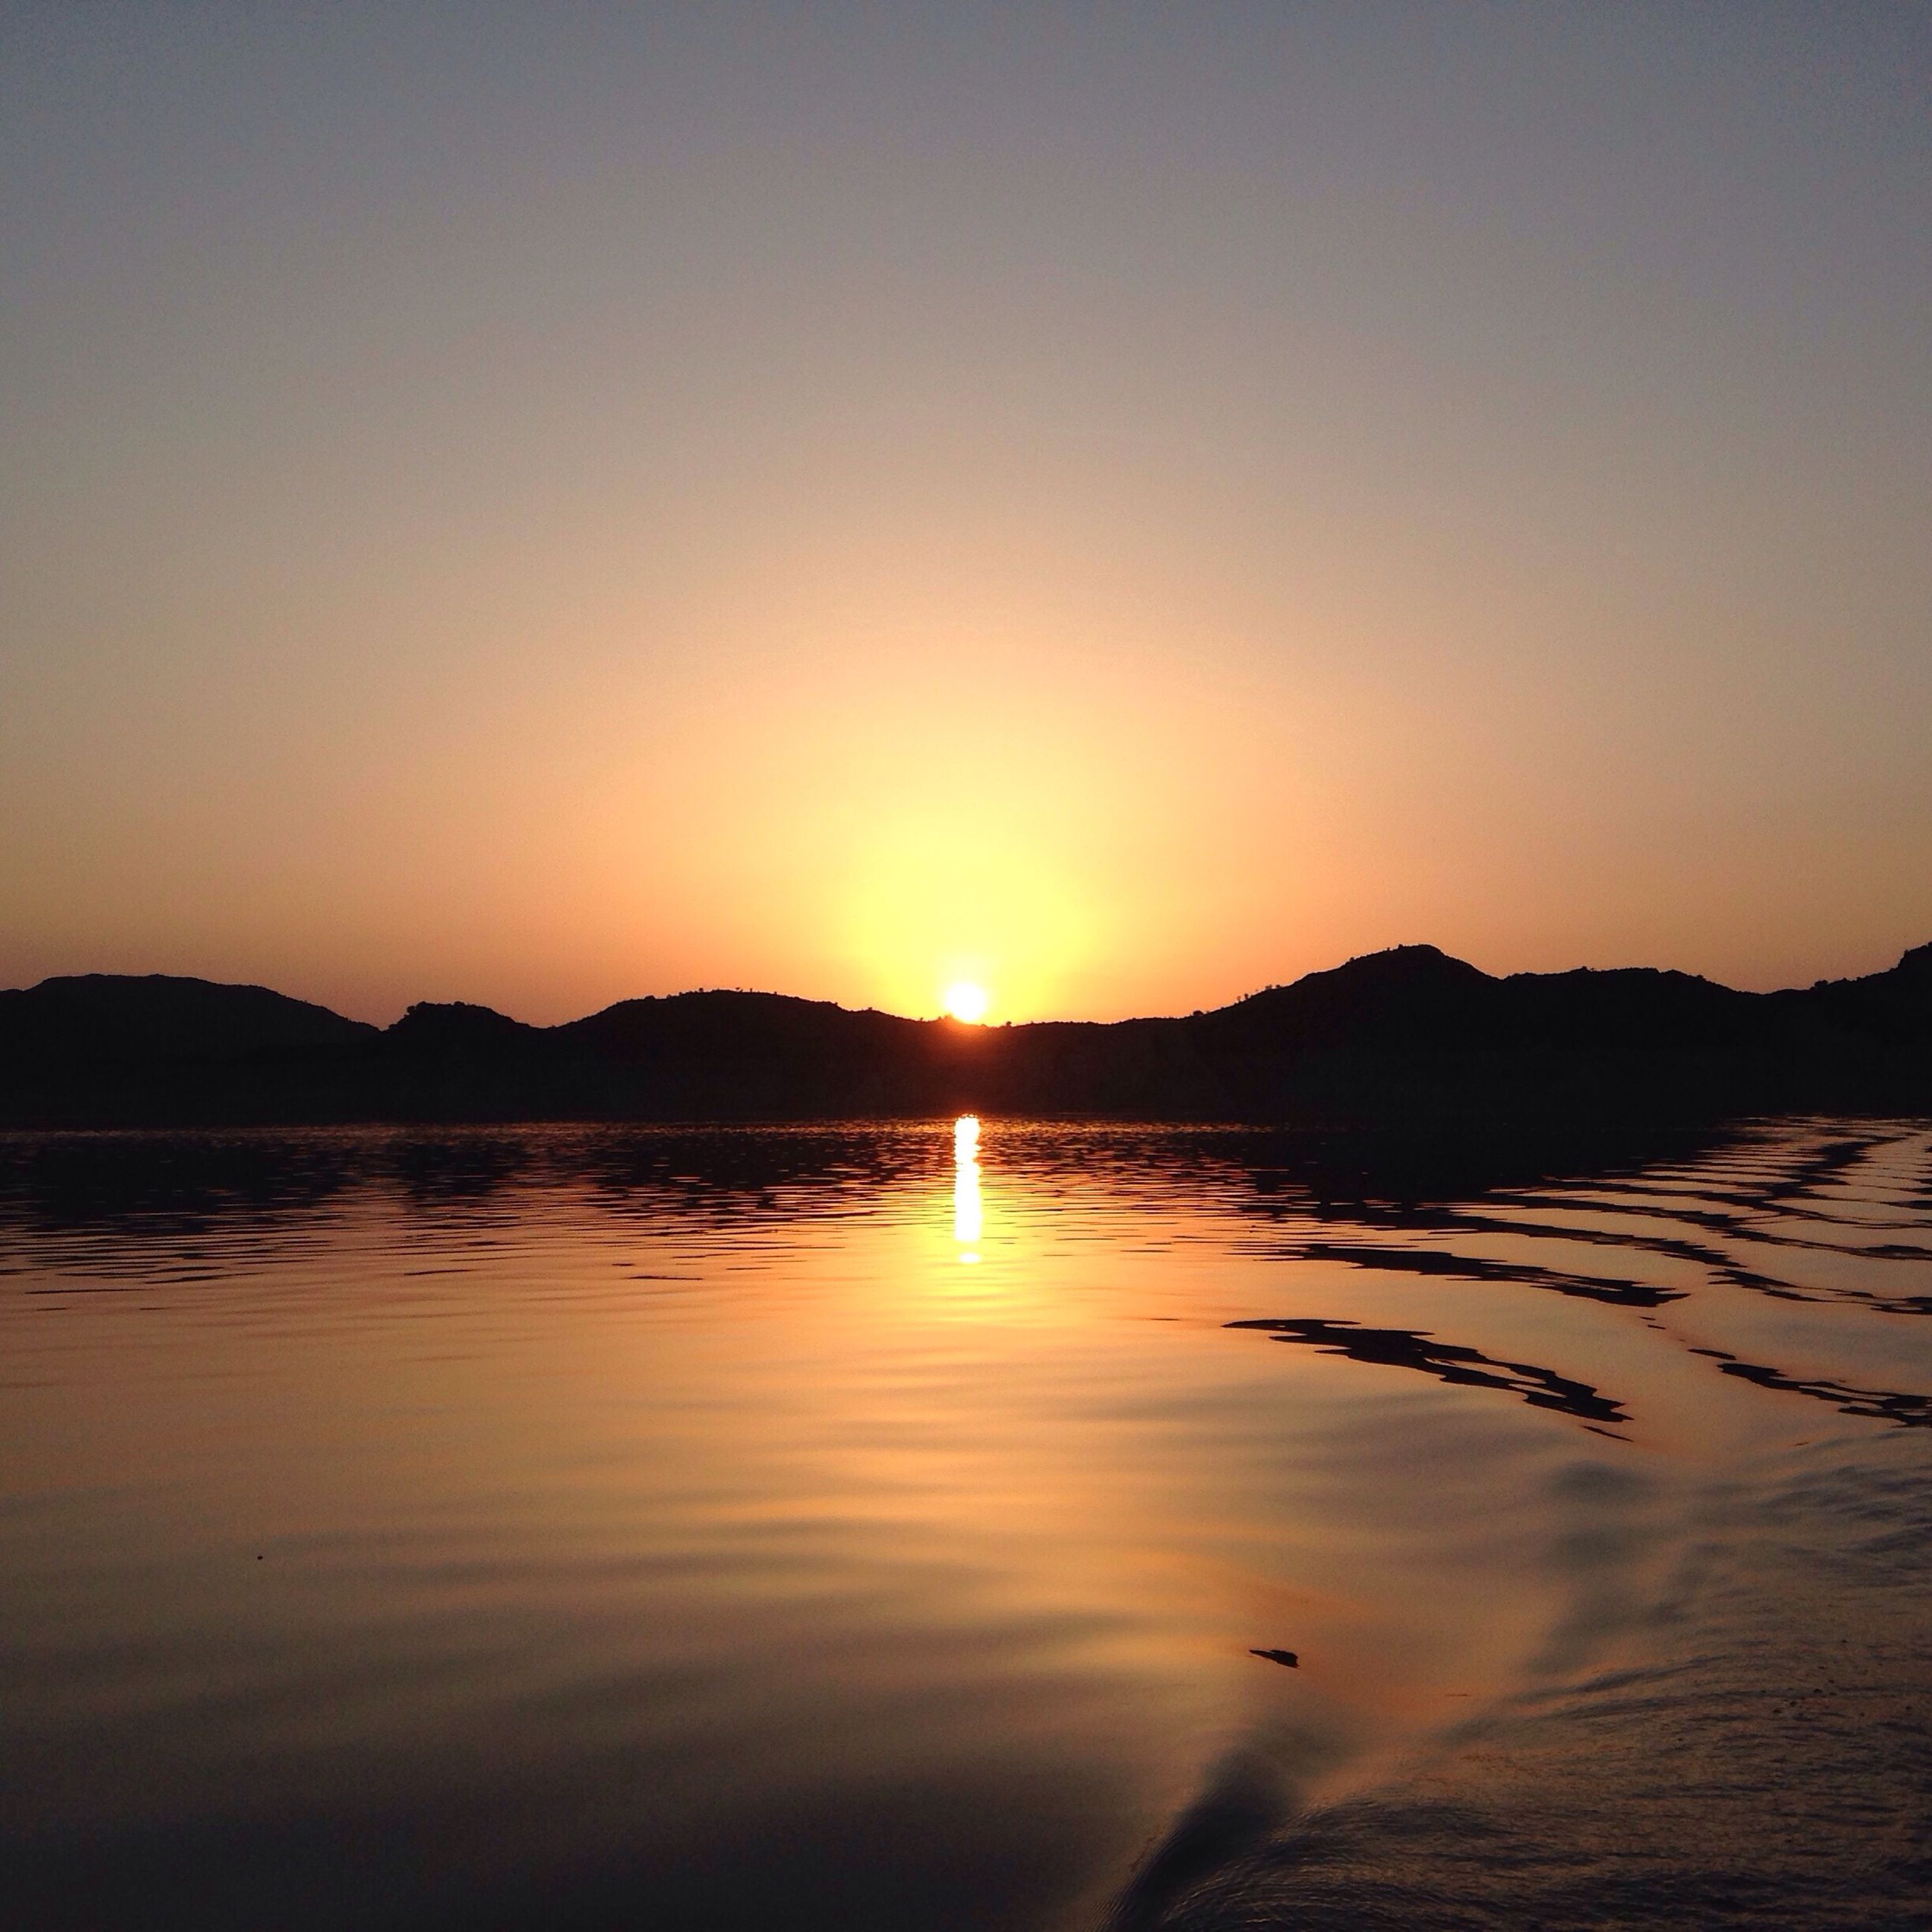 sunset, water, reflection, scenics, tranquil scene, tranquility, sun, clear sky, beauty in nature, mountain, orange color, sea, waterfront, nature, majestic, calm, non-urban scene, vacations, tourism, no people, mountain range, remote, romantic sky, vibrant color, water surface